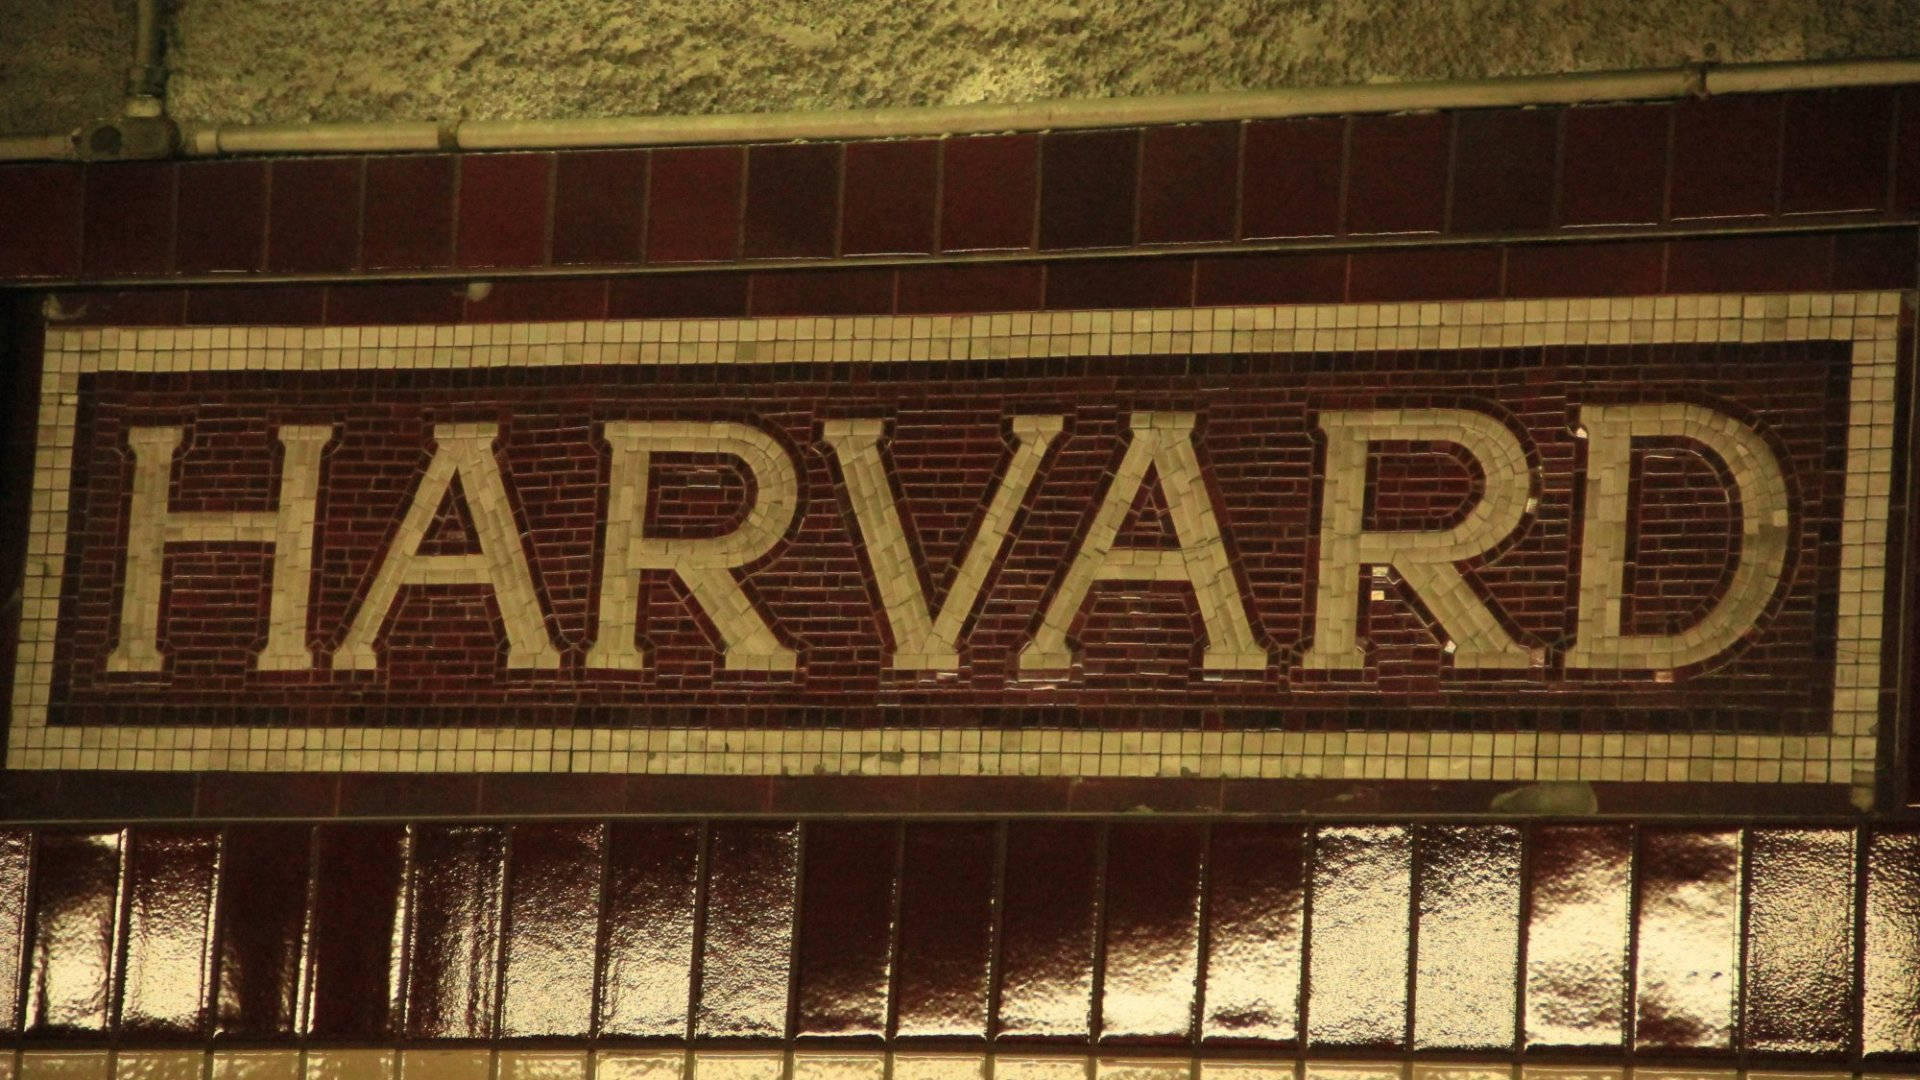 4 Invaluable Pieces of Advice for Entrepreneurs, From Harvard's Class Day